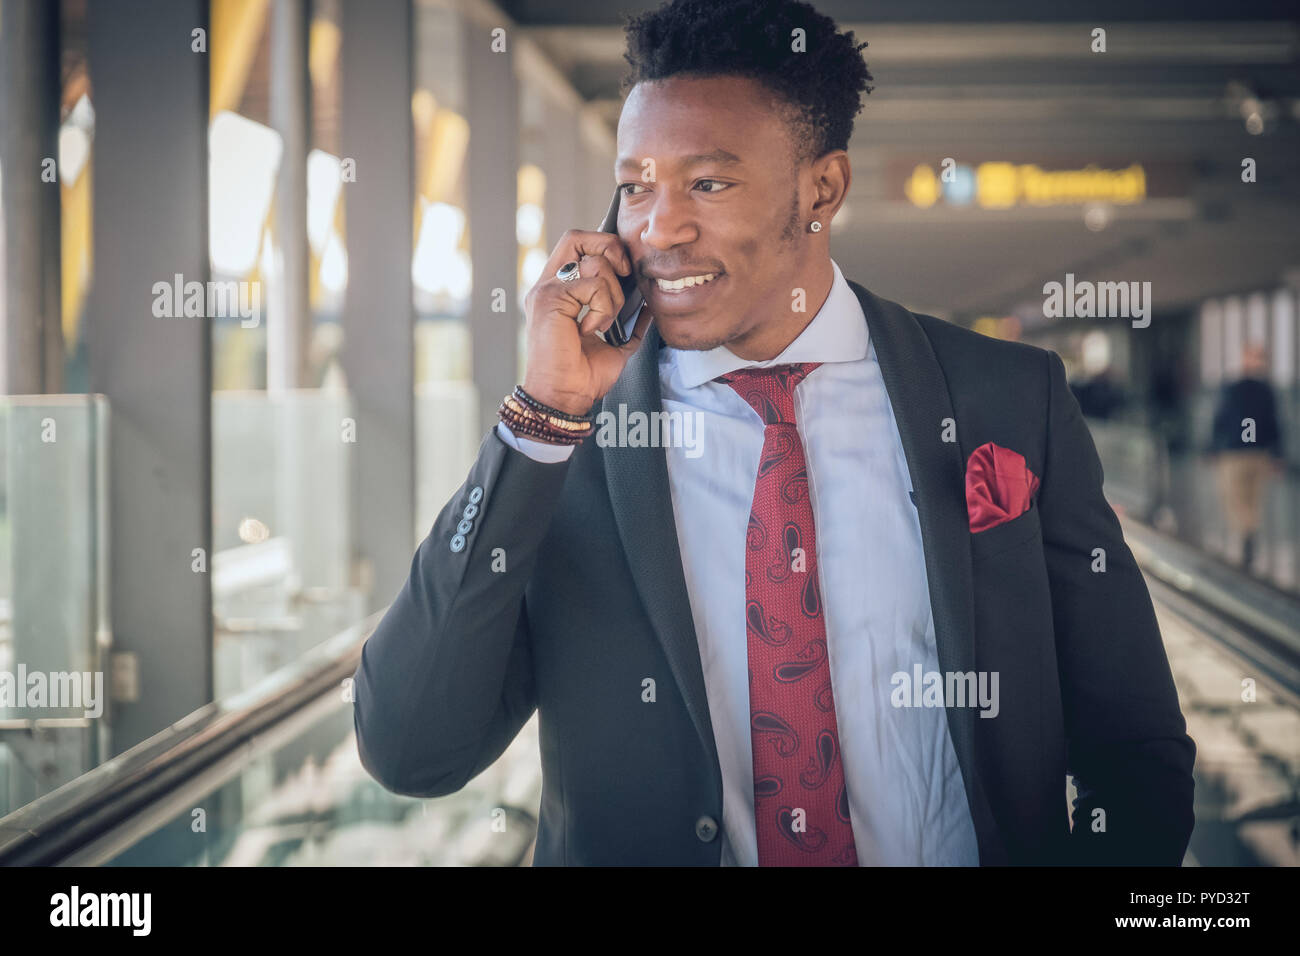 Close up of one young and attractive black businessman going to the airport wearing a black suit with a red tie. He is smiling and talking by telephon - Stock Image